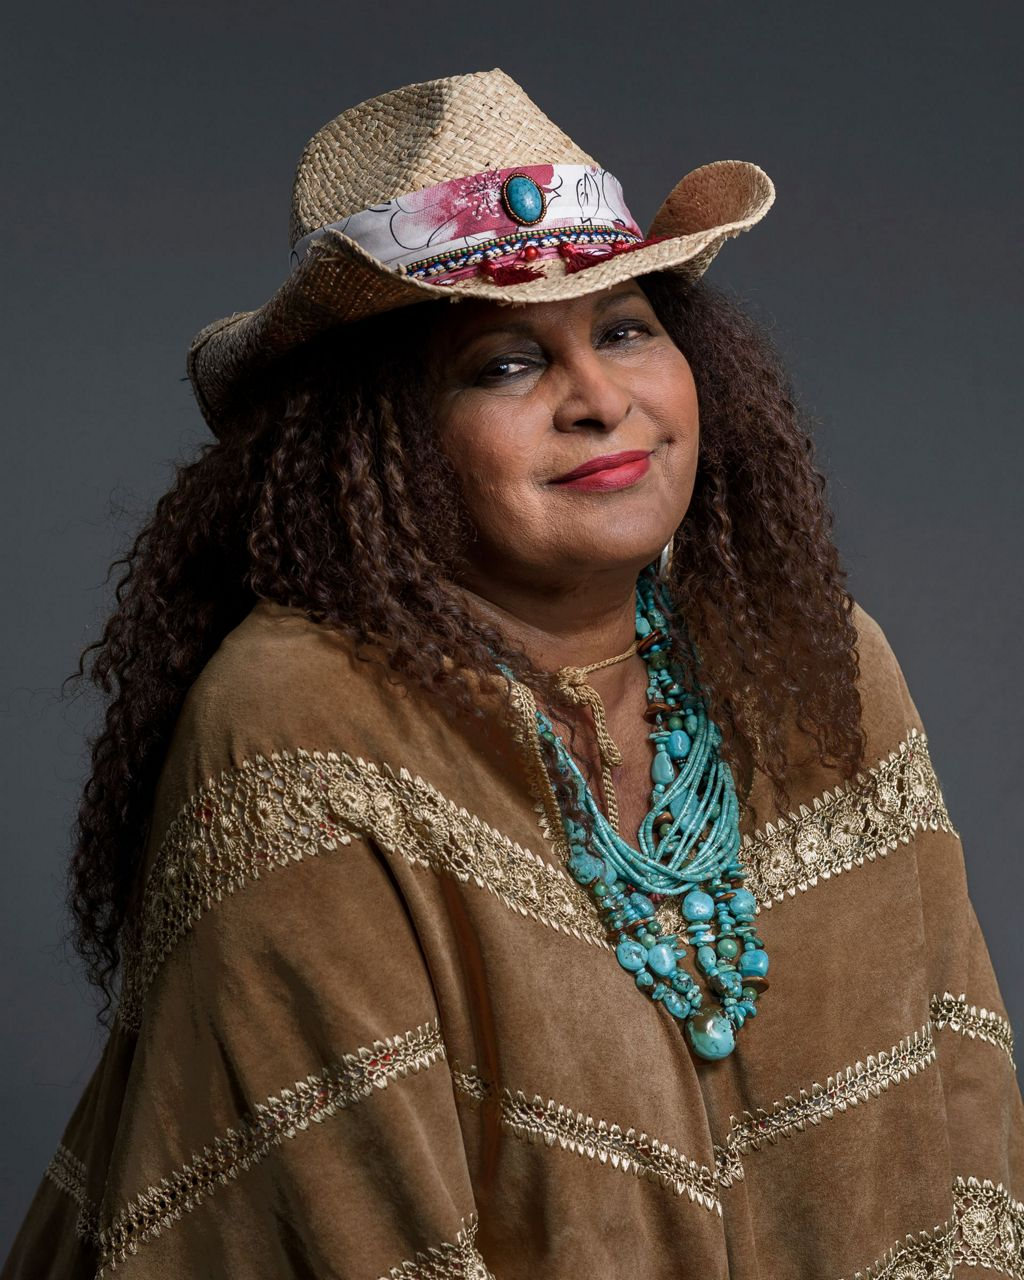 As Pam Grier celebrates 70, she finds peace of the grid